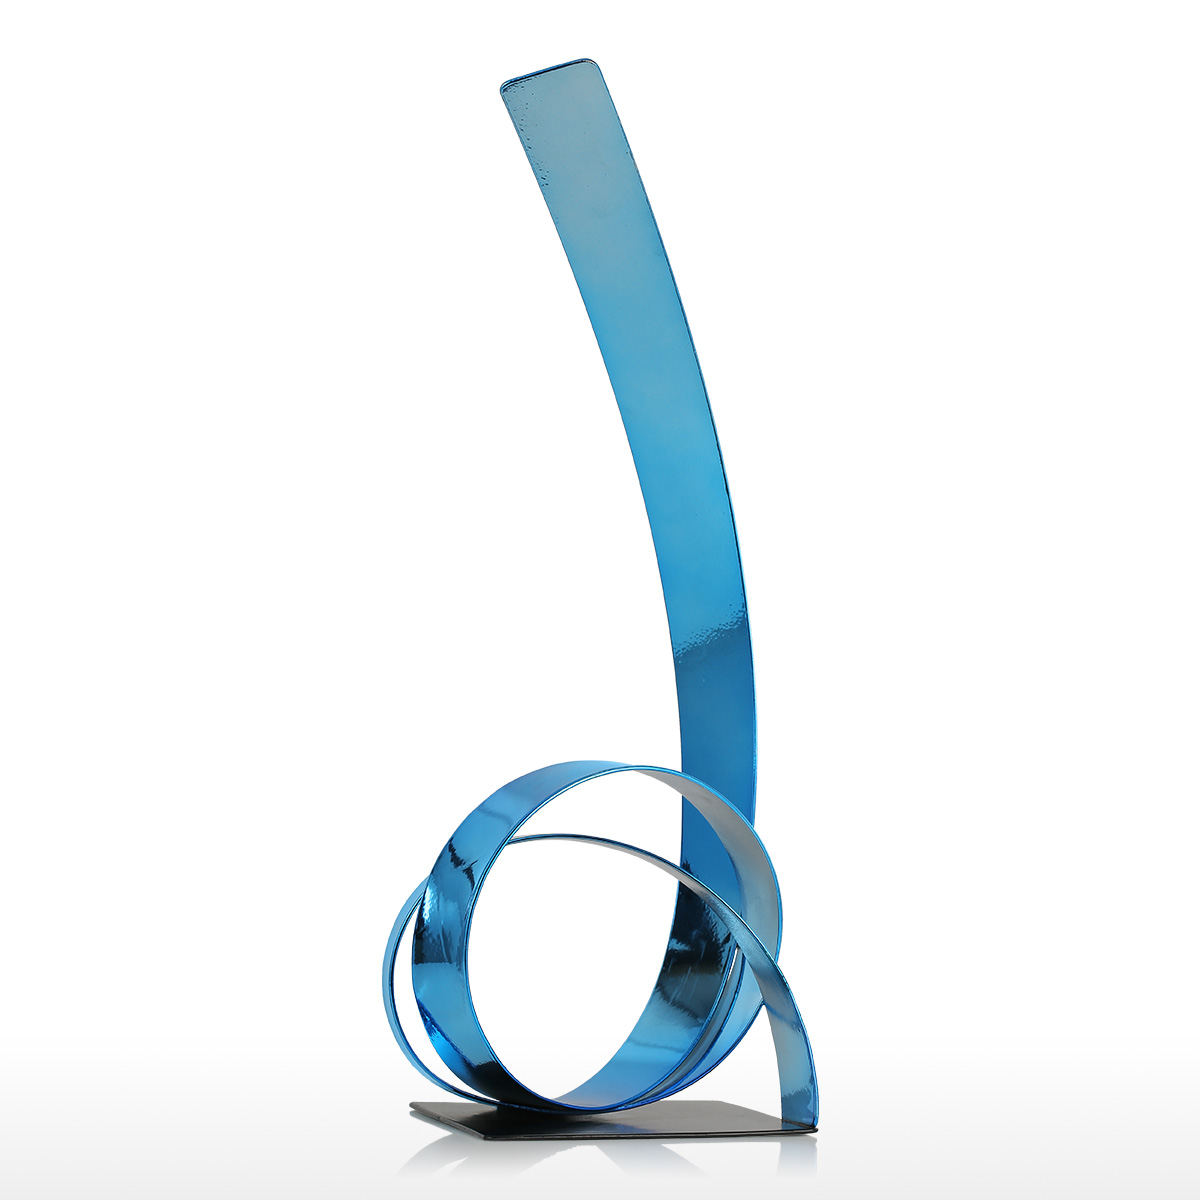 Iron Sculpture The Rising Ribbon Metal Sculpture Modern Style Sculpture Handicraft Home Decoration Ornament Blue